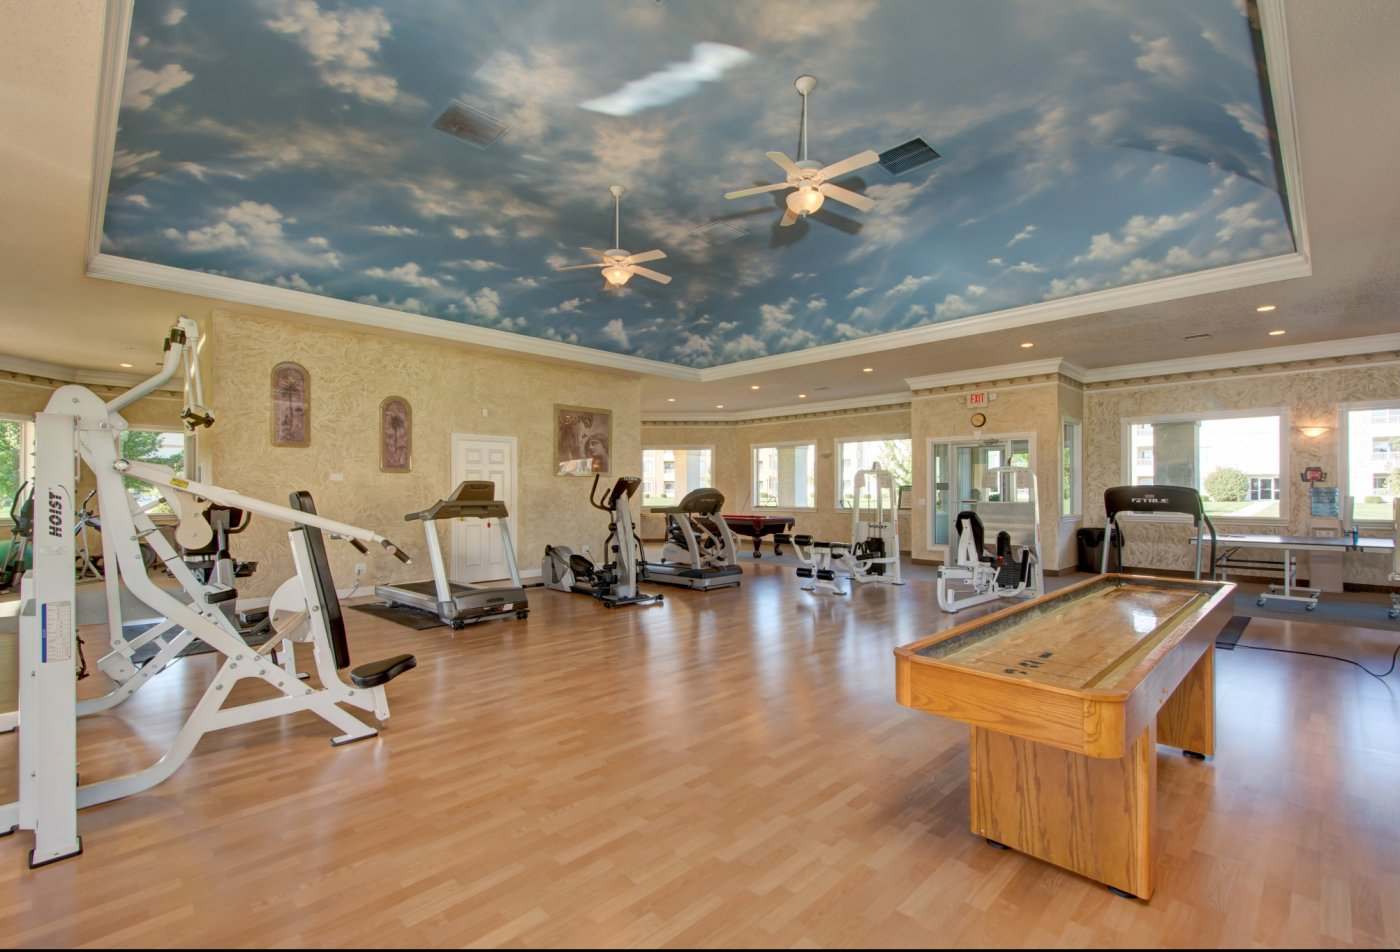 fitness facility with shuffle board and fitness equipment